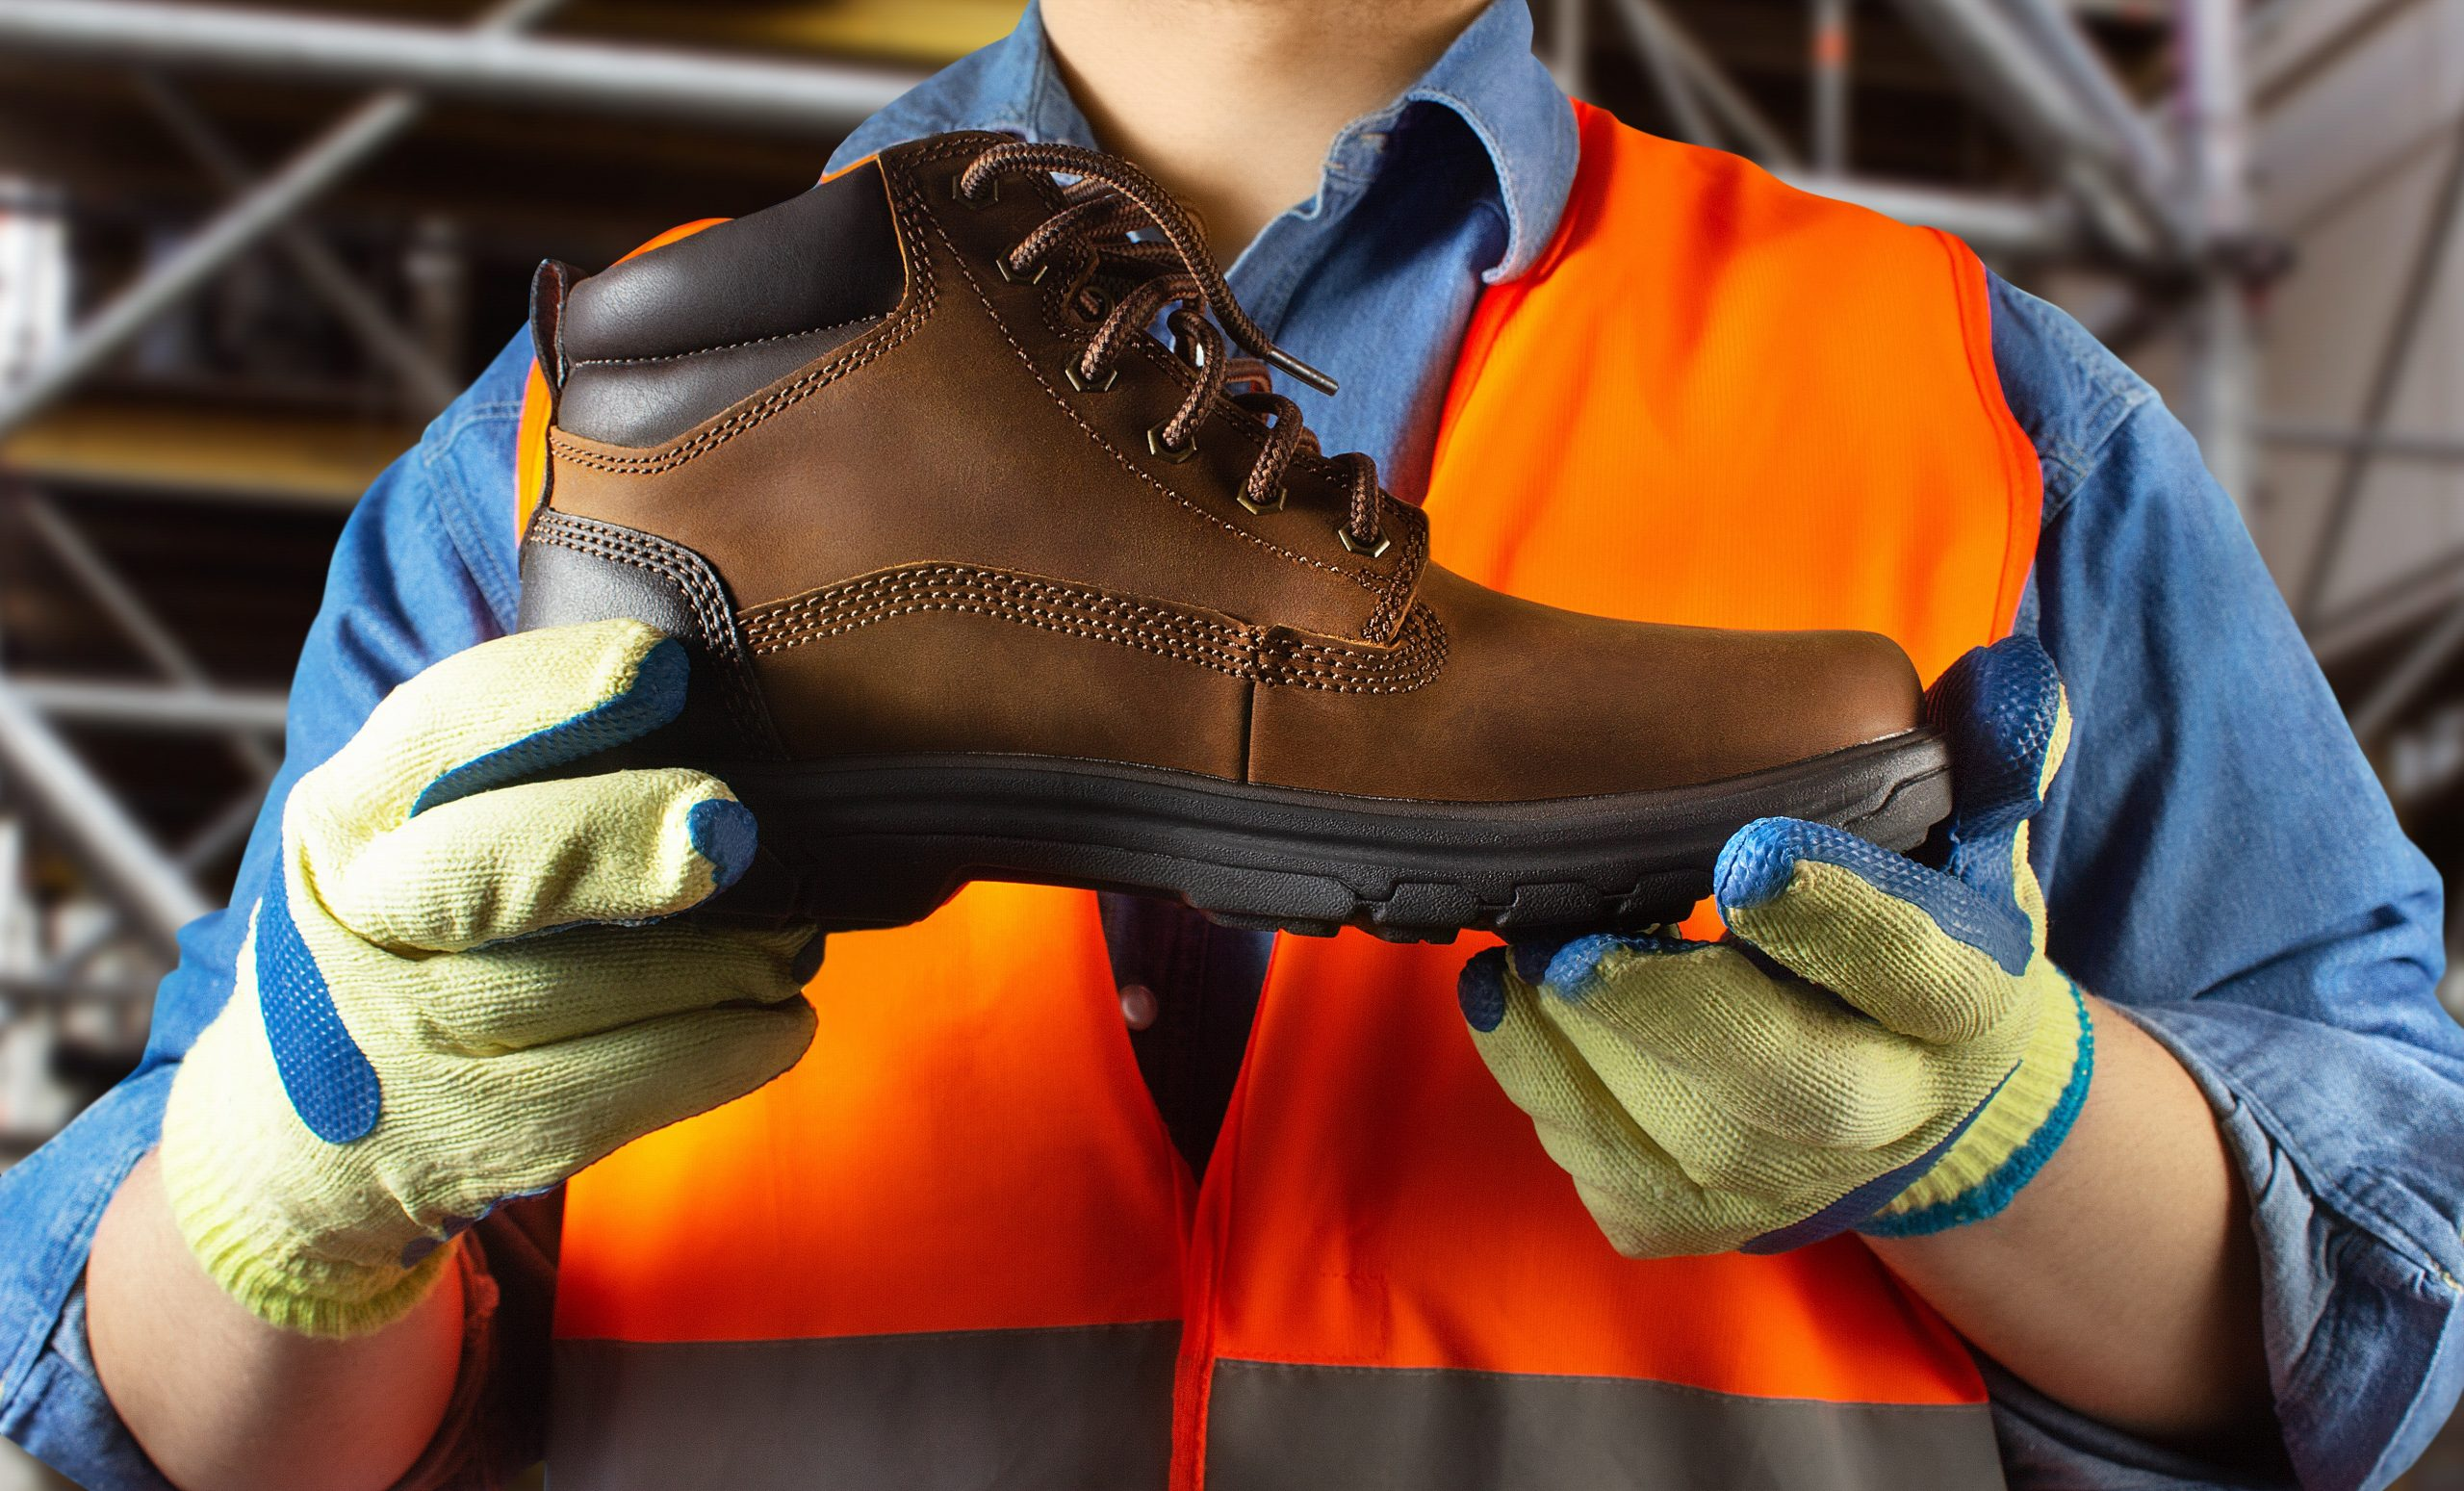 Are Waterproof Work Boots Worth It?